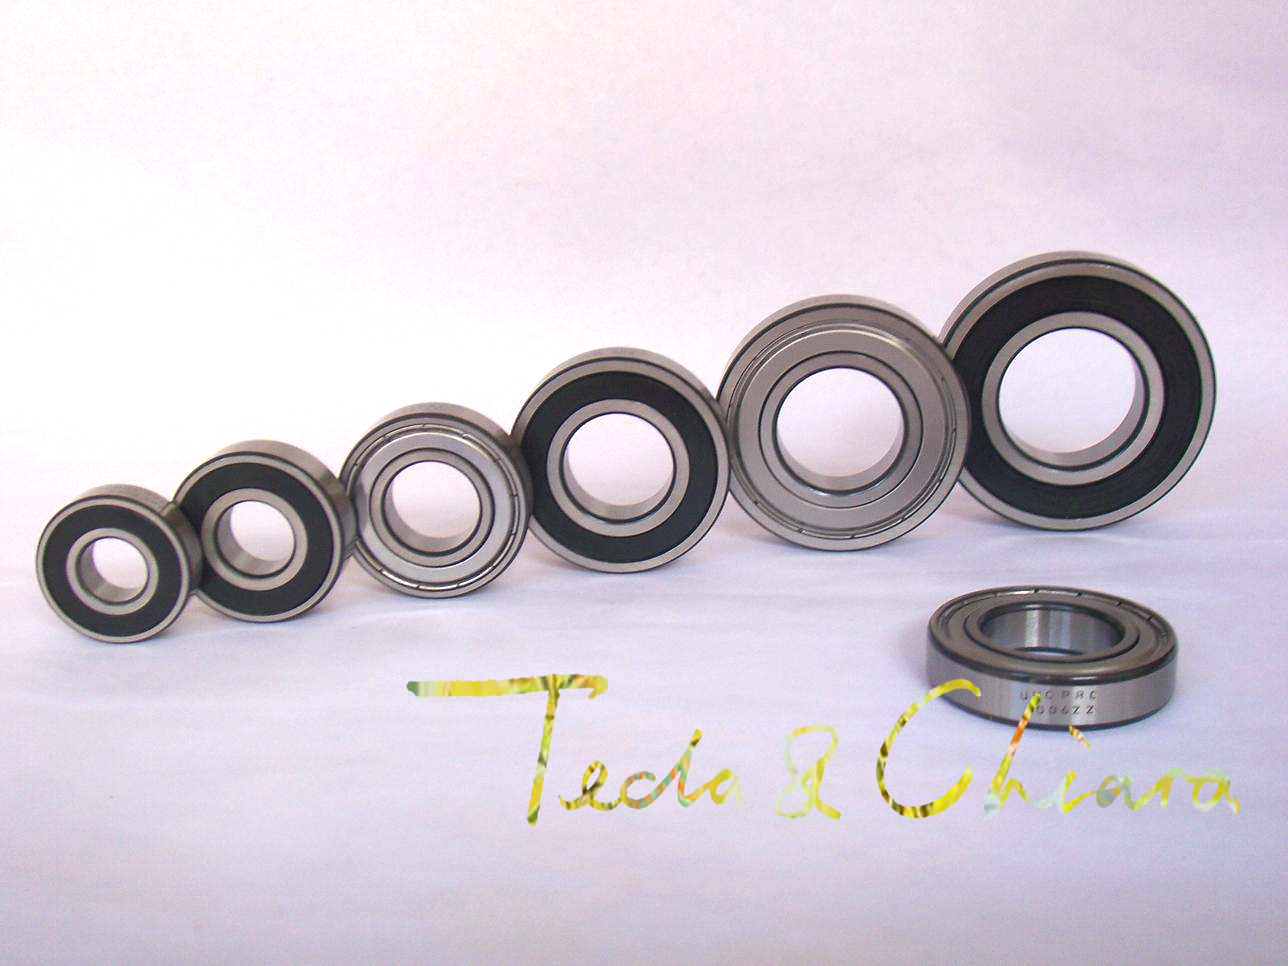 6900 6900ZZ 6900RS 6900-2Z 6900Z 6900-2RS ZZ RS RZ 2RZ Deep Groove Ball Bearings 10 x 22 x 6mm High Quality free shipping 25x47x12mm deep groove ball bearings 6005 zz 2z 6005zz bearing 6005zz 6005 2rs